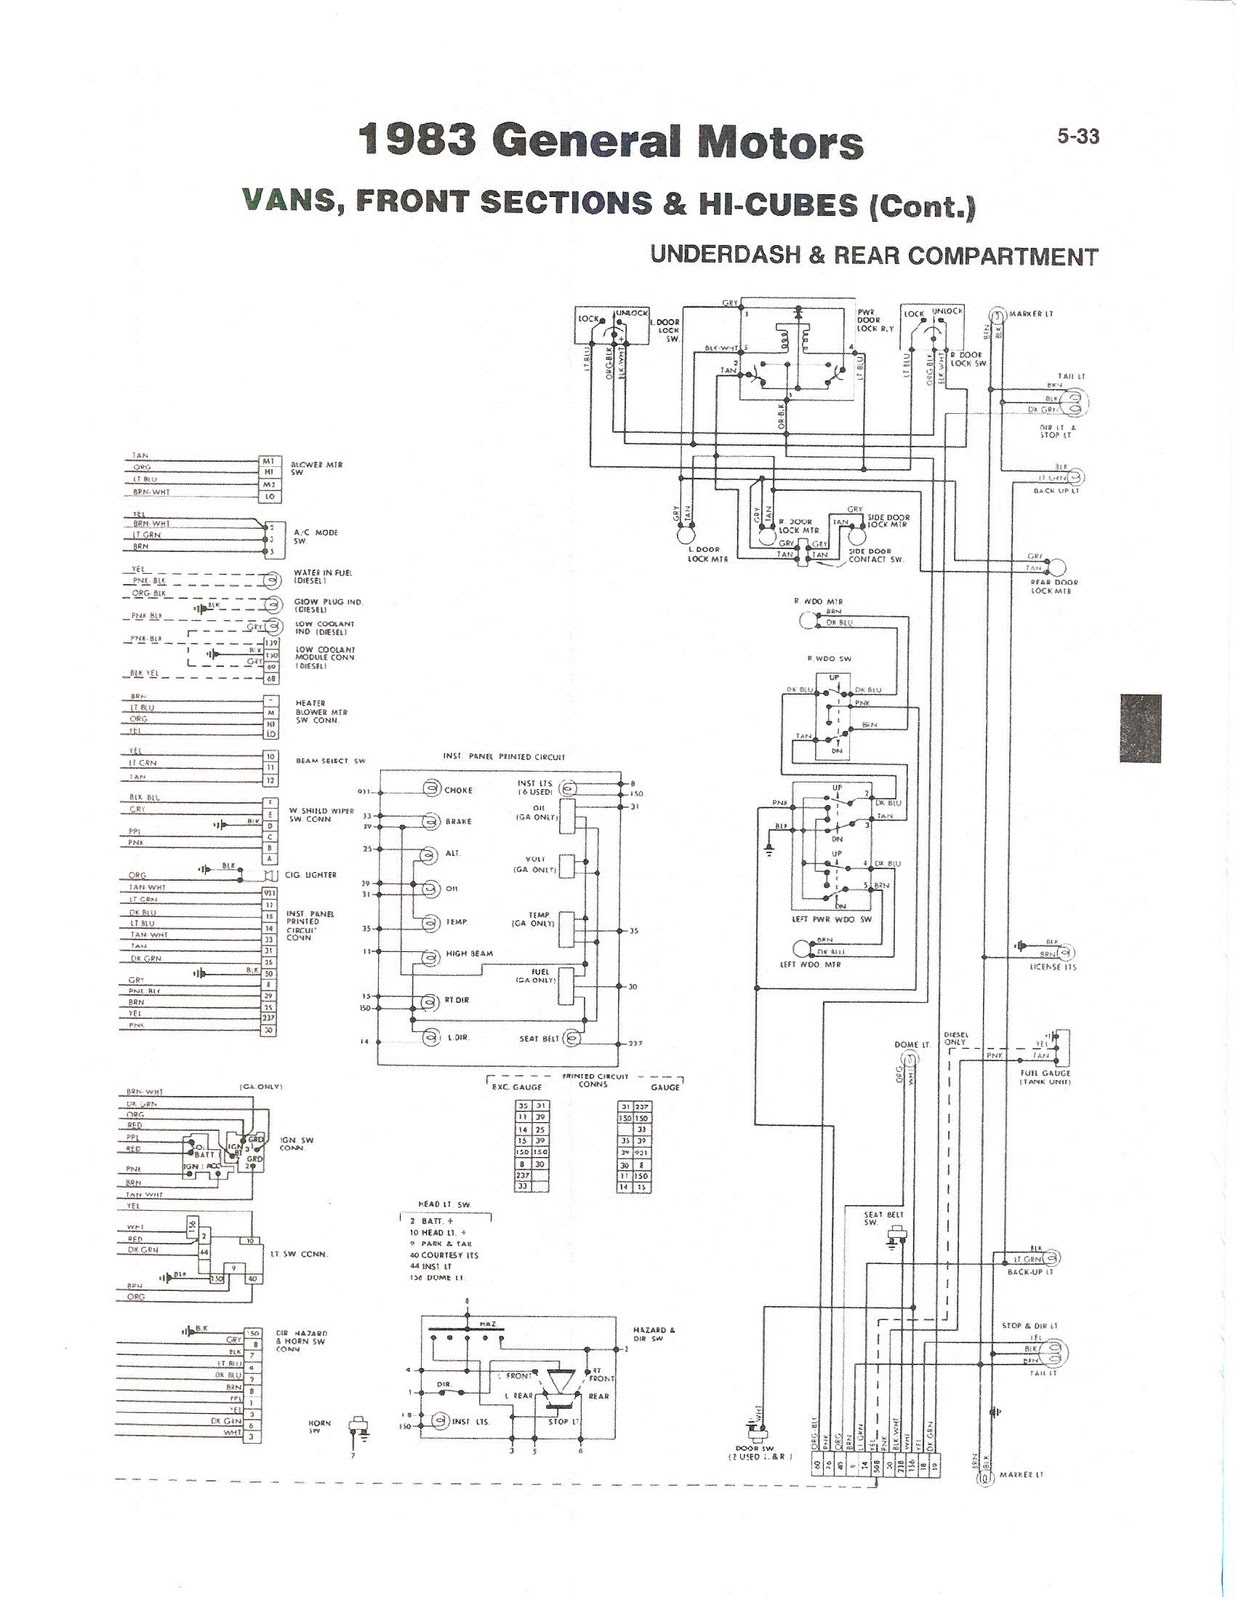 83+GM+Van+front+section+%26+Hi Cubes++underdash+%26+rear+compartment fleetwood rv wiring diagram rv park wiring diagram \u2022 free wiring fleetwood motorhome fuse diagrams at aneh.co